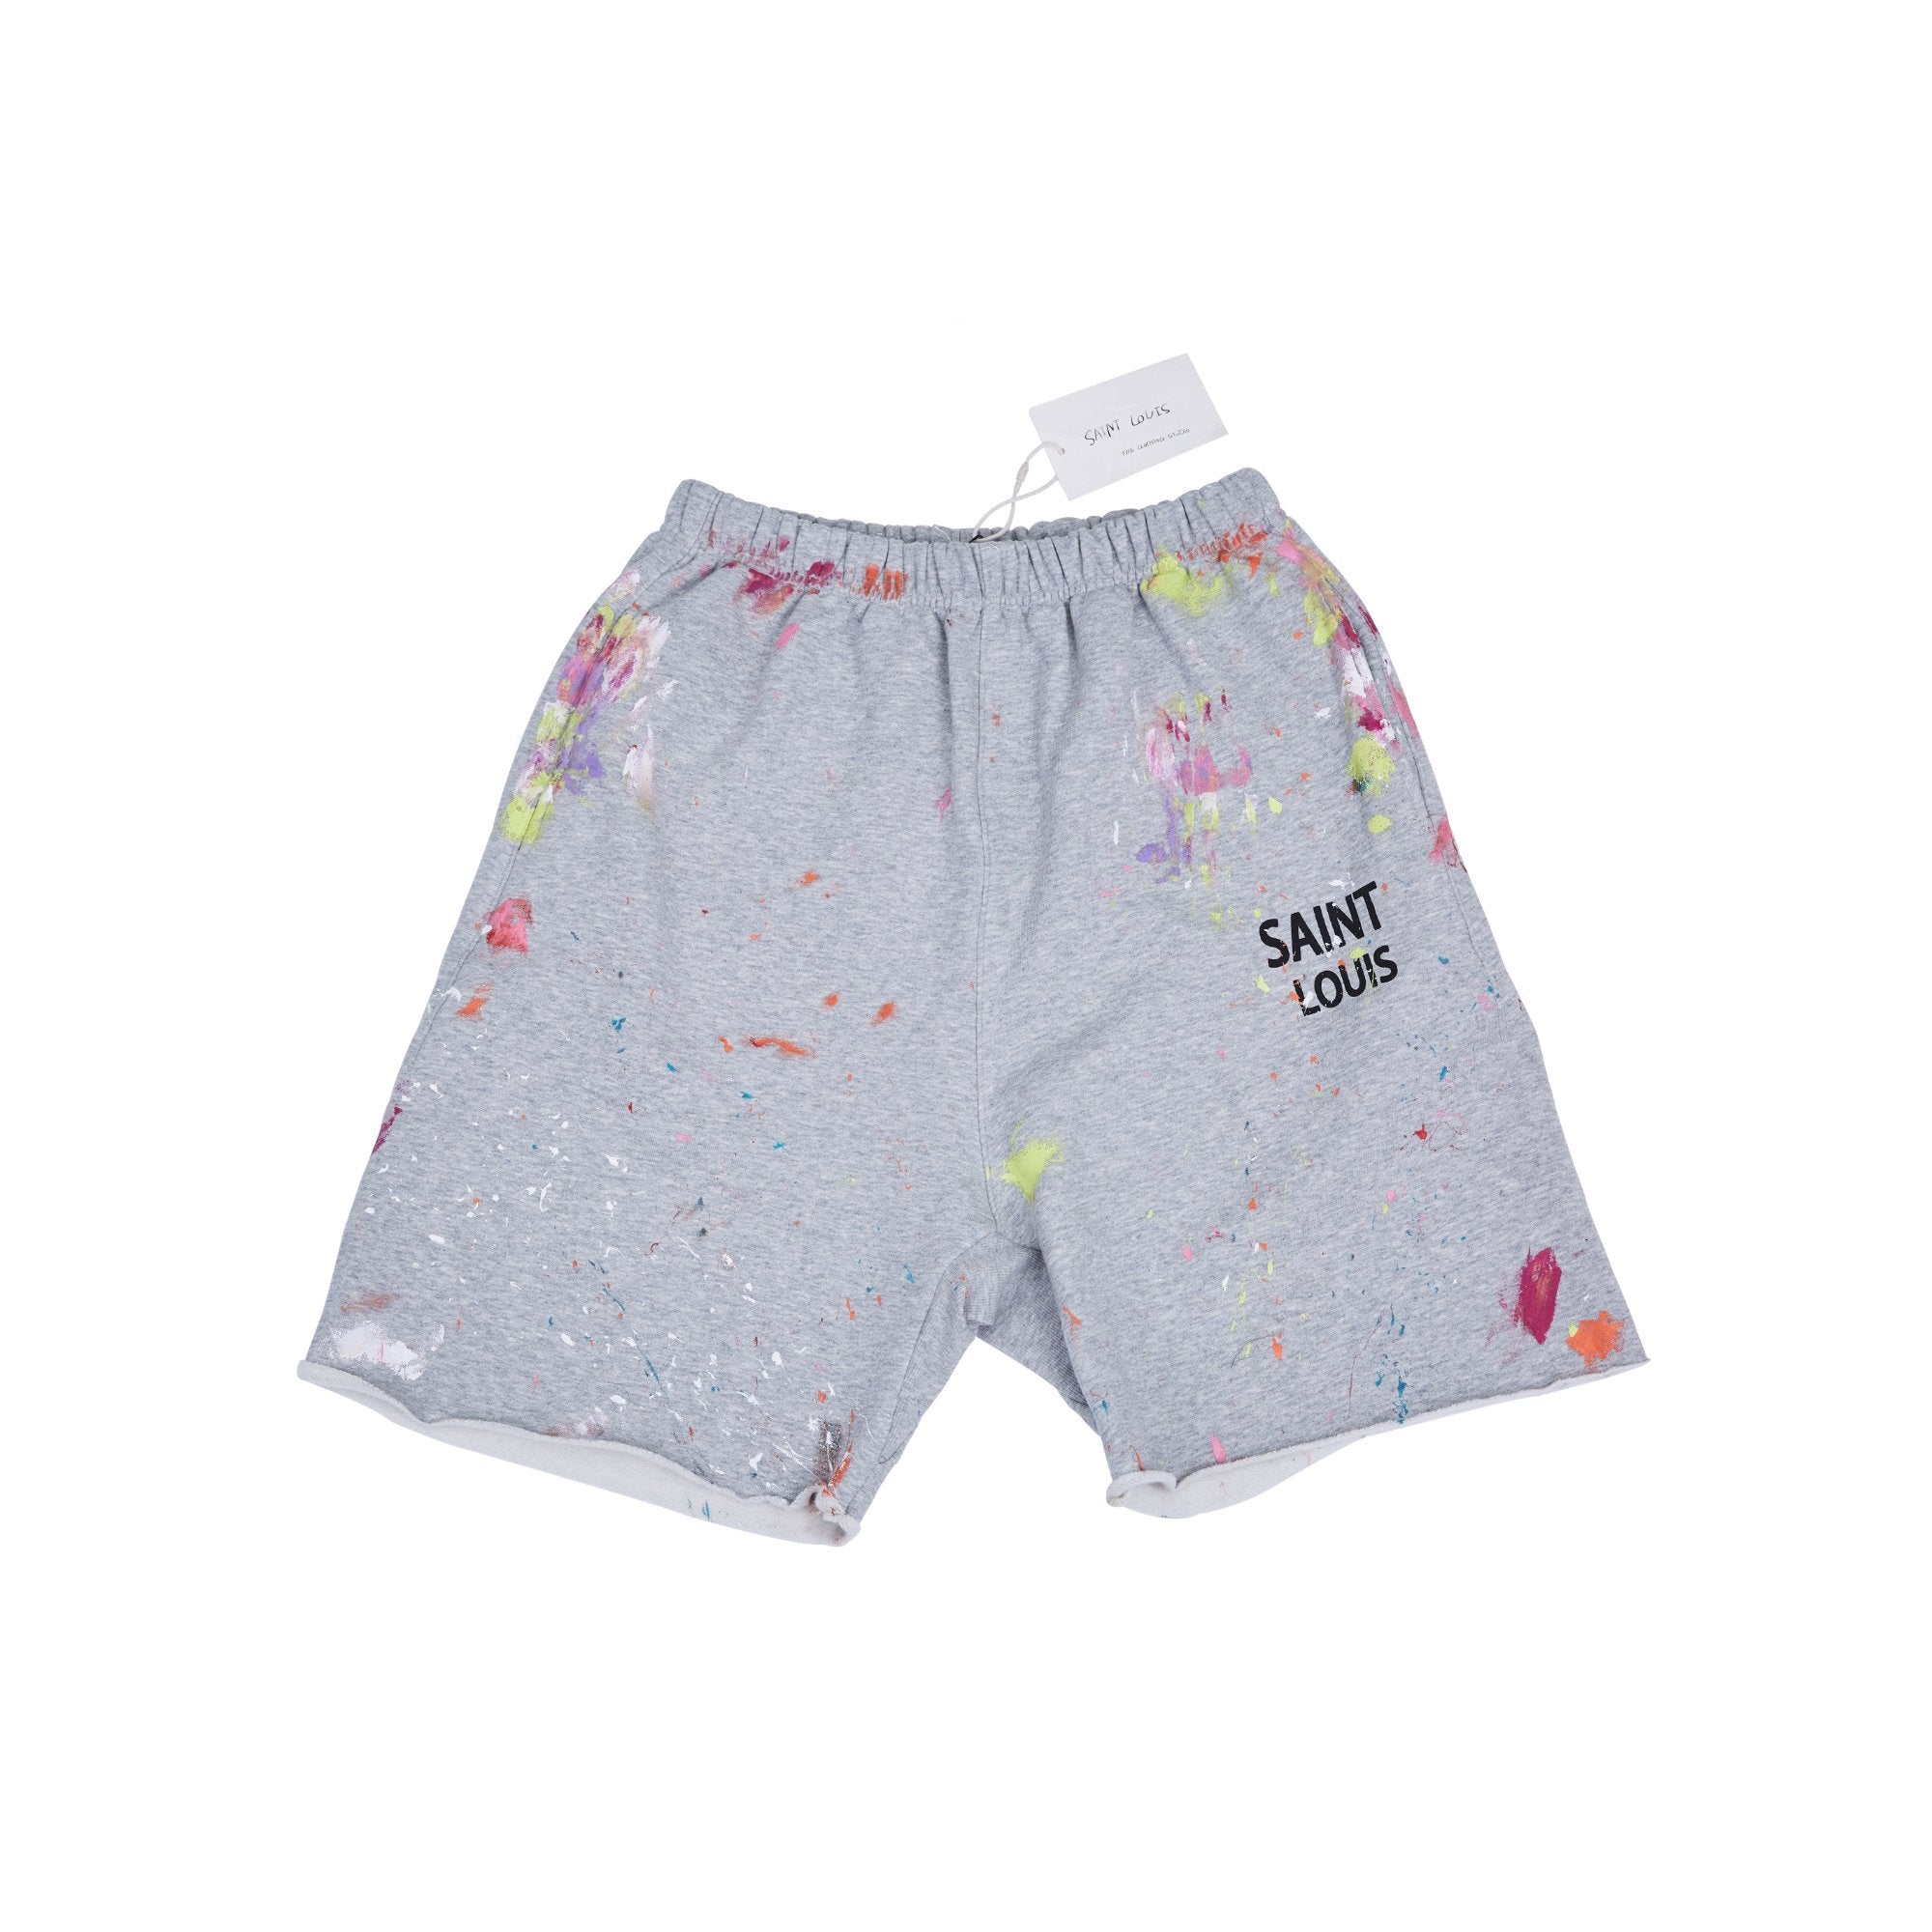 SAINT LOUIS Painted Sweat Shorts Grey | MADA IN CHINA